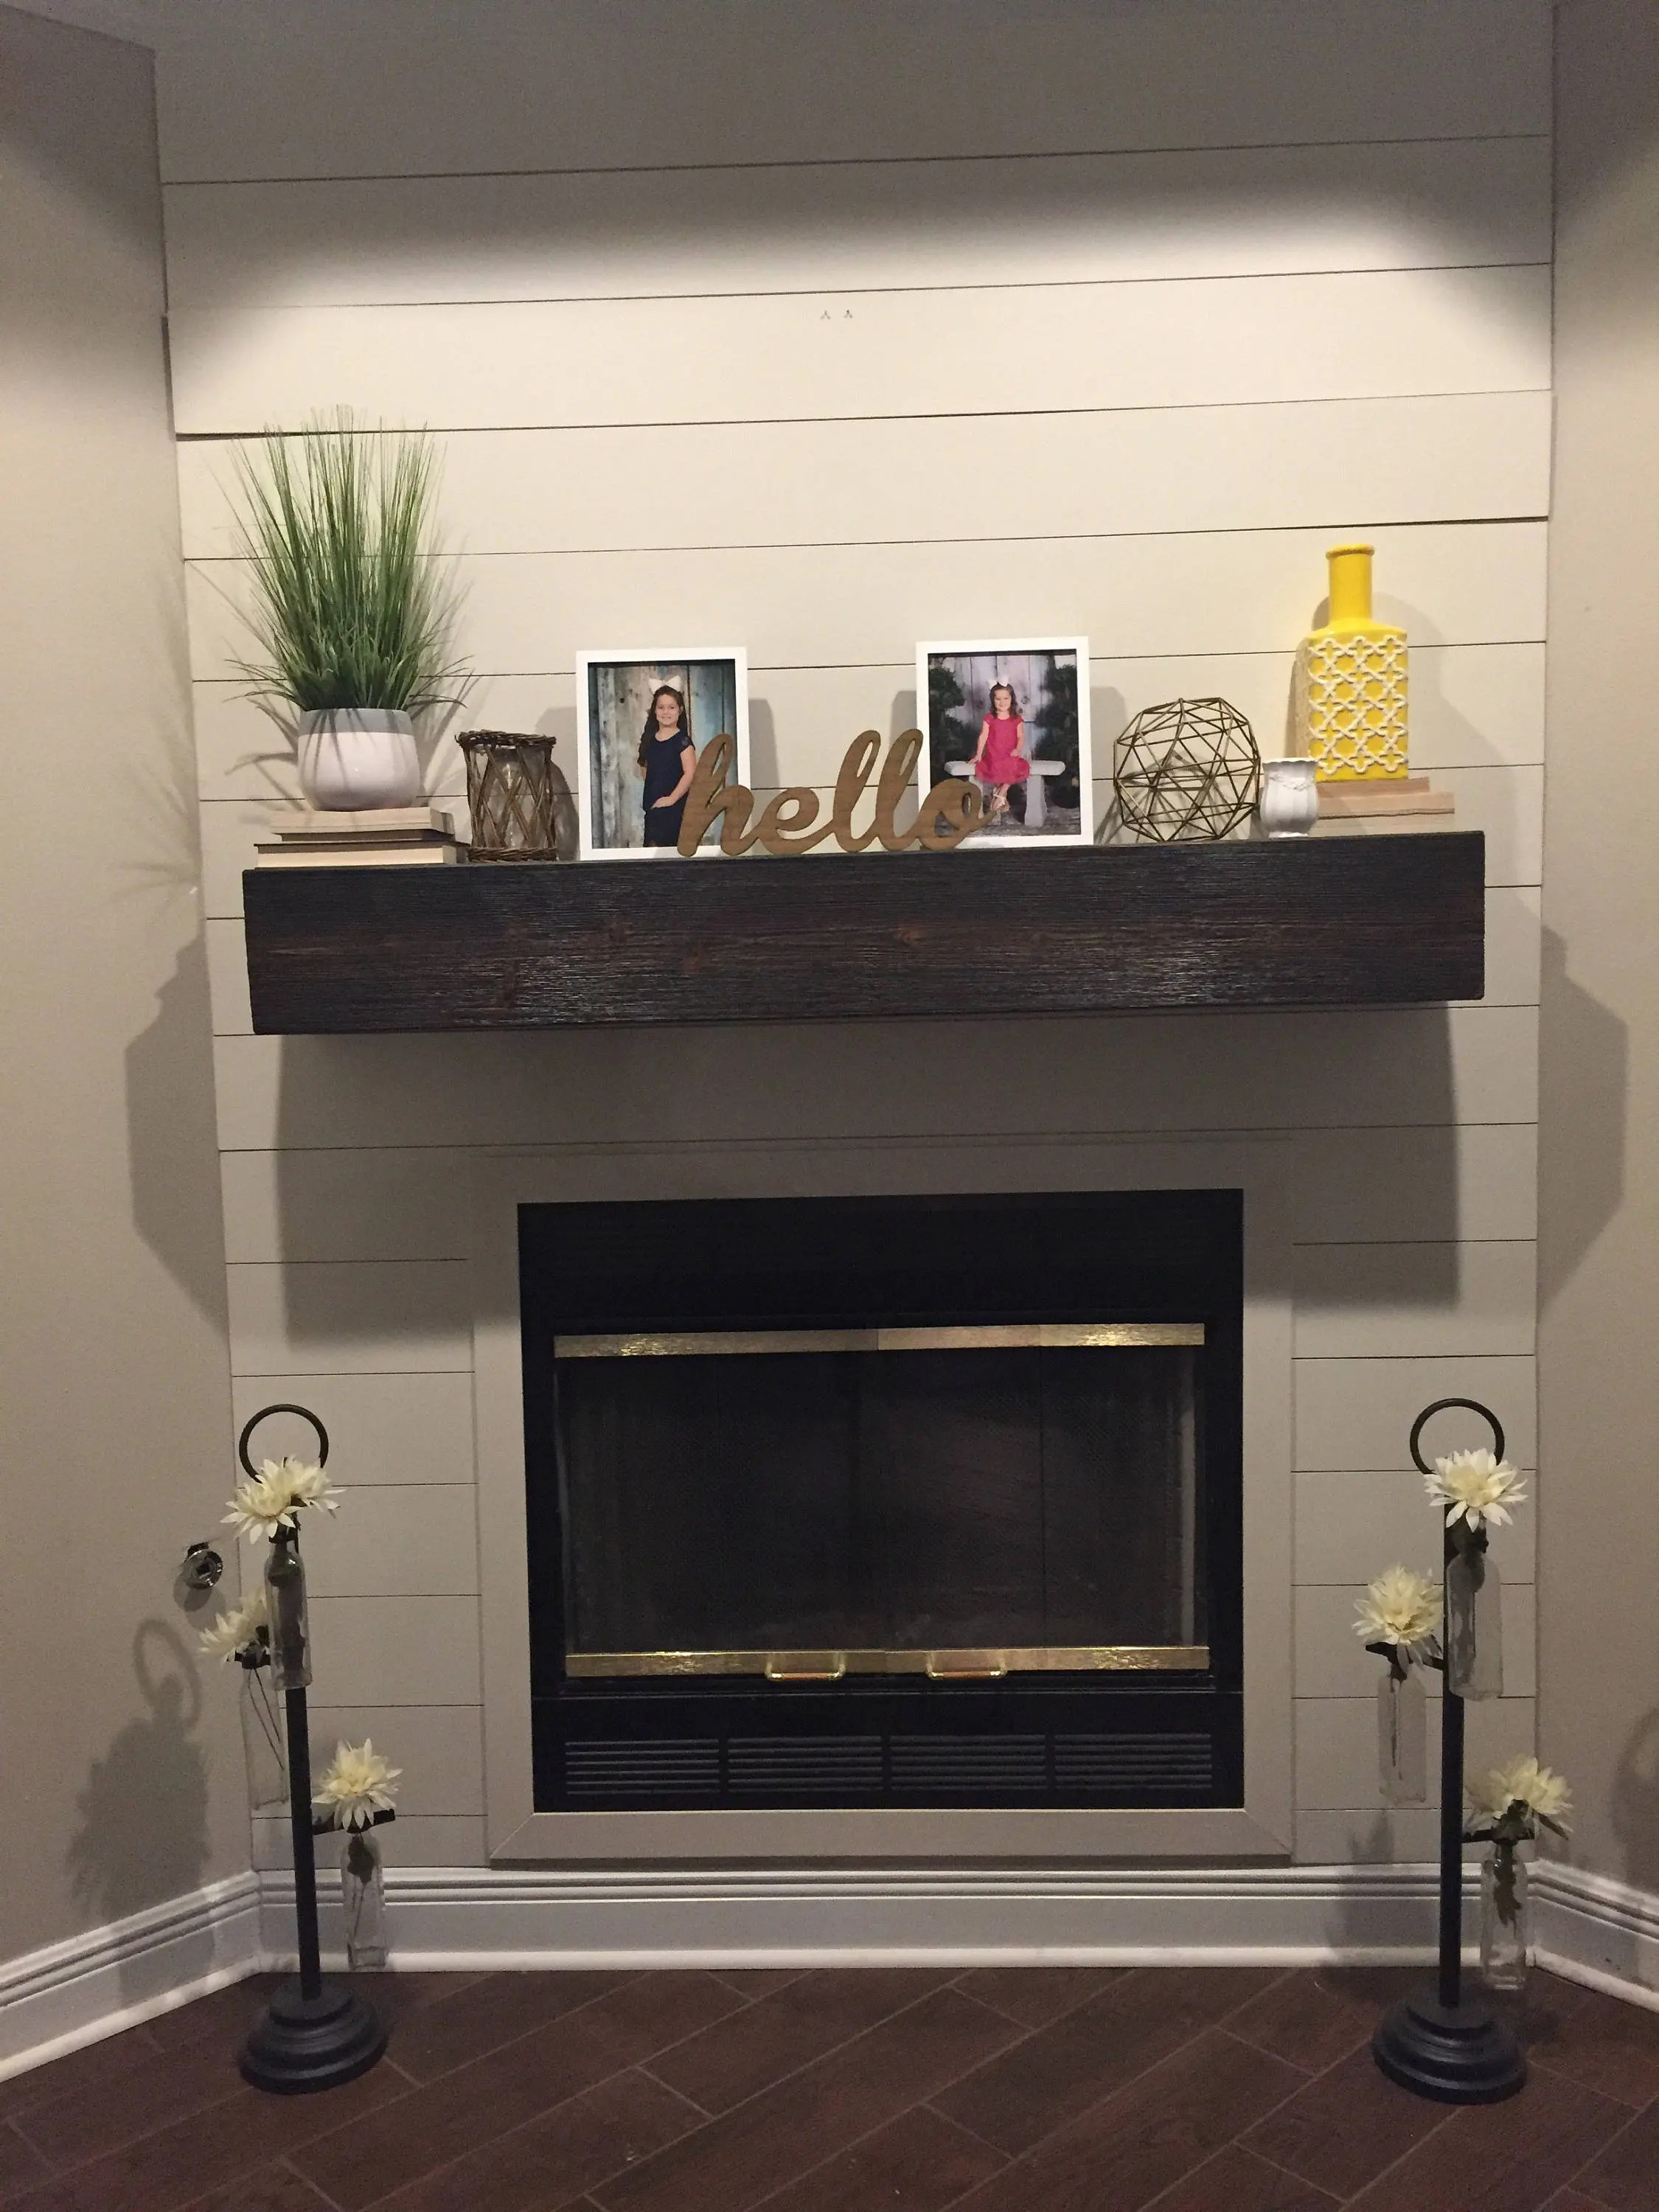 Floating Fireplace Mantel Ideas Fireplace Mantel Rugged Wood Mantel Floating Shelf Fireplace Mantle 60